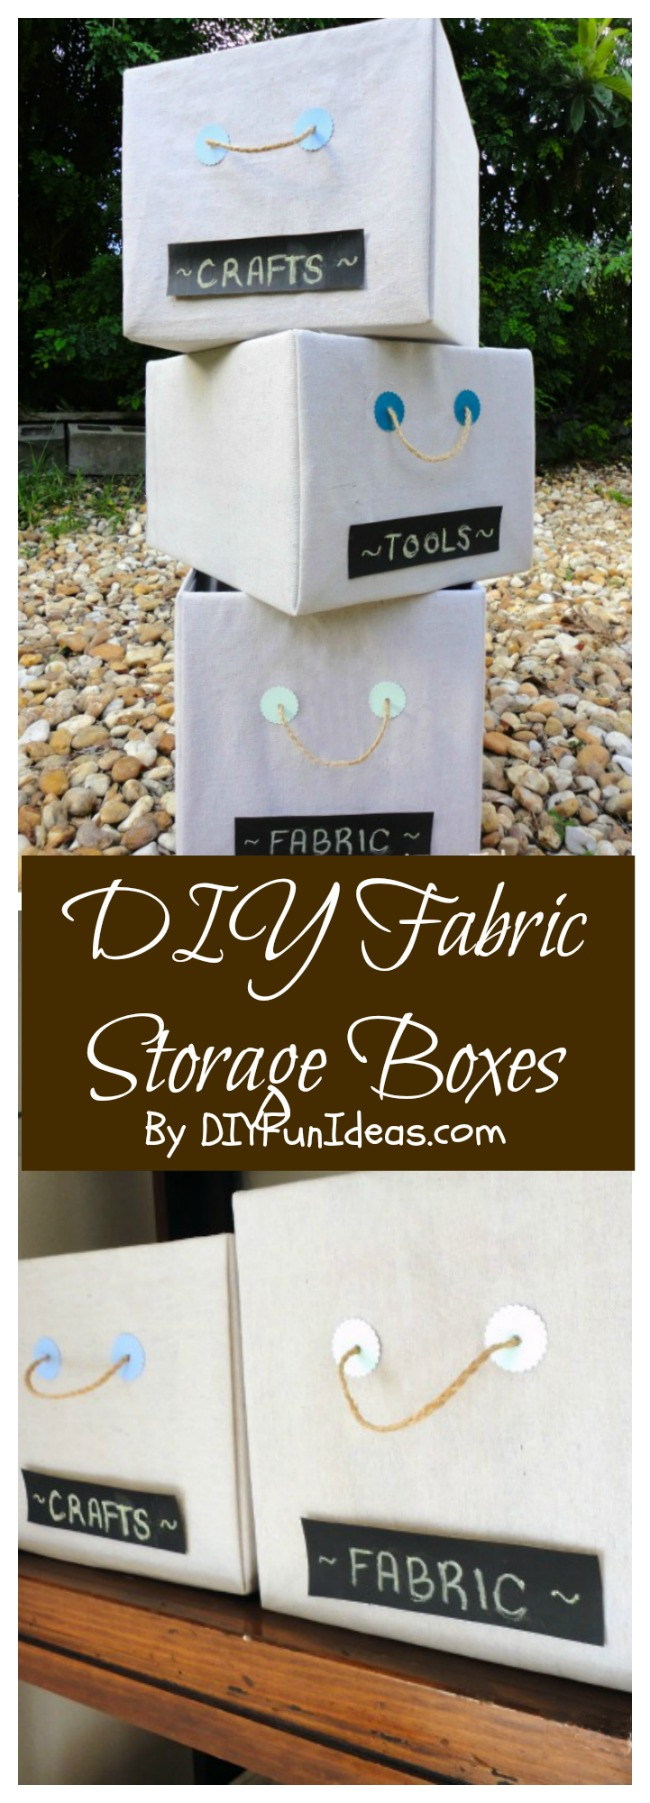 Get Organized With Diy Fabric Covered Storage Boxes Do It Yourself Fun Ideas